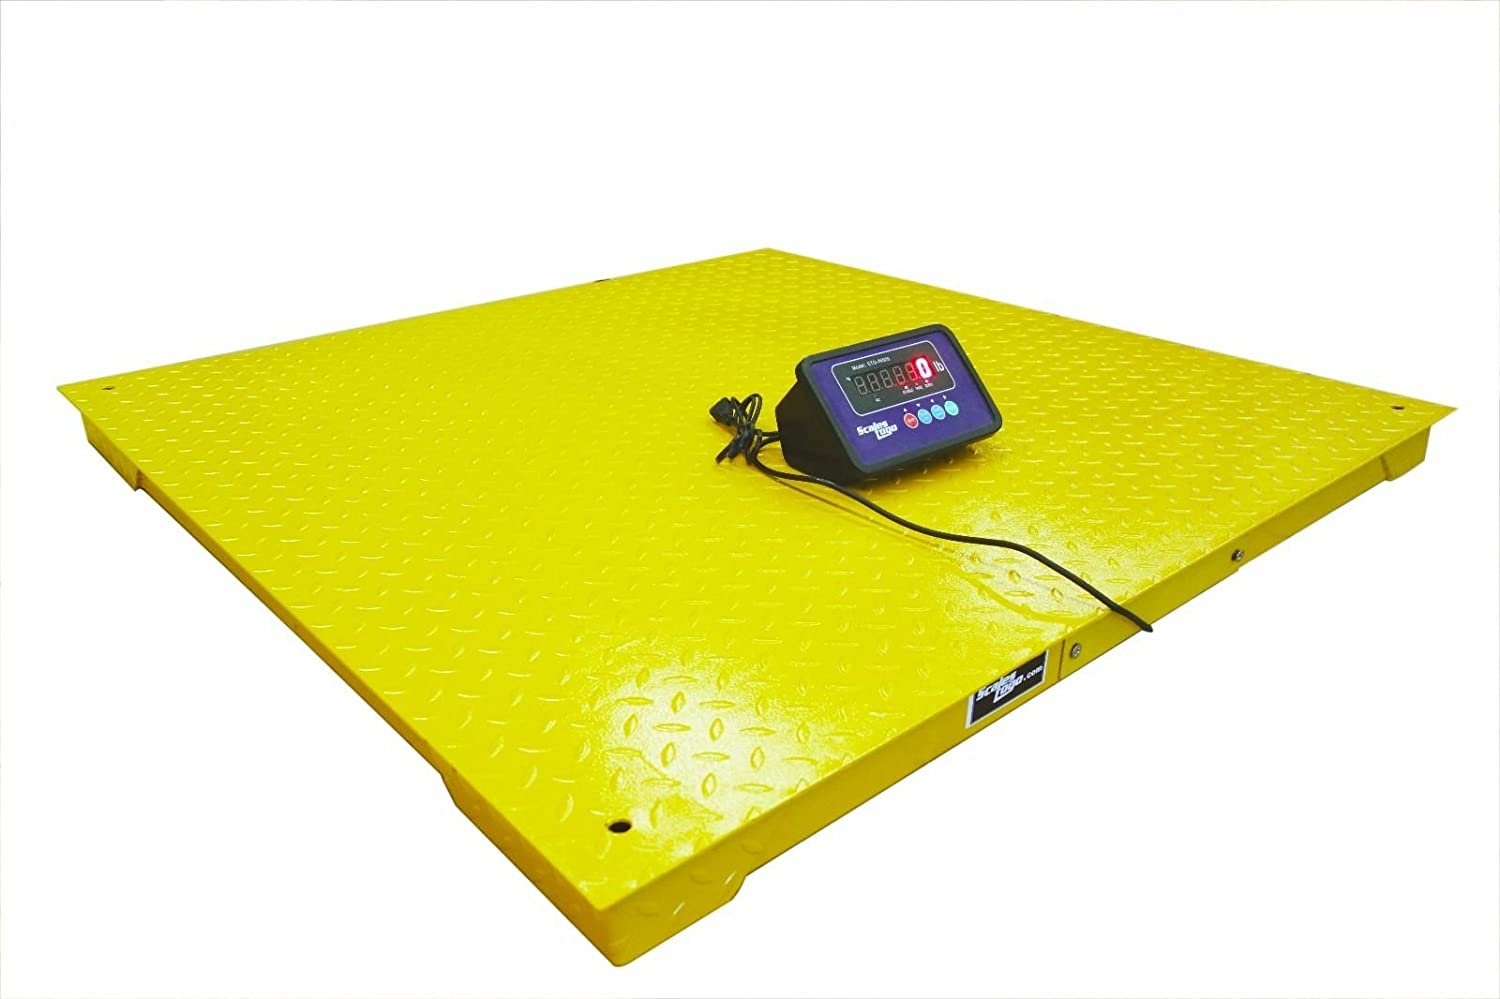 Heavy Duty 5,000 lb Floor Scale 40x40 with Indicator